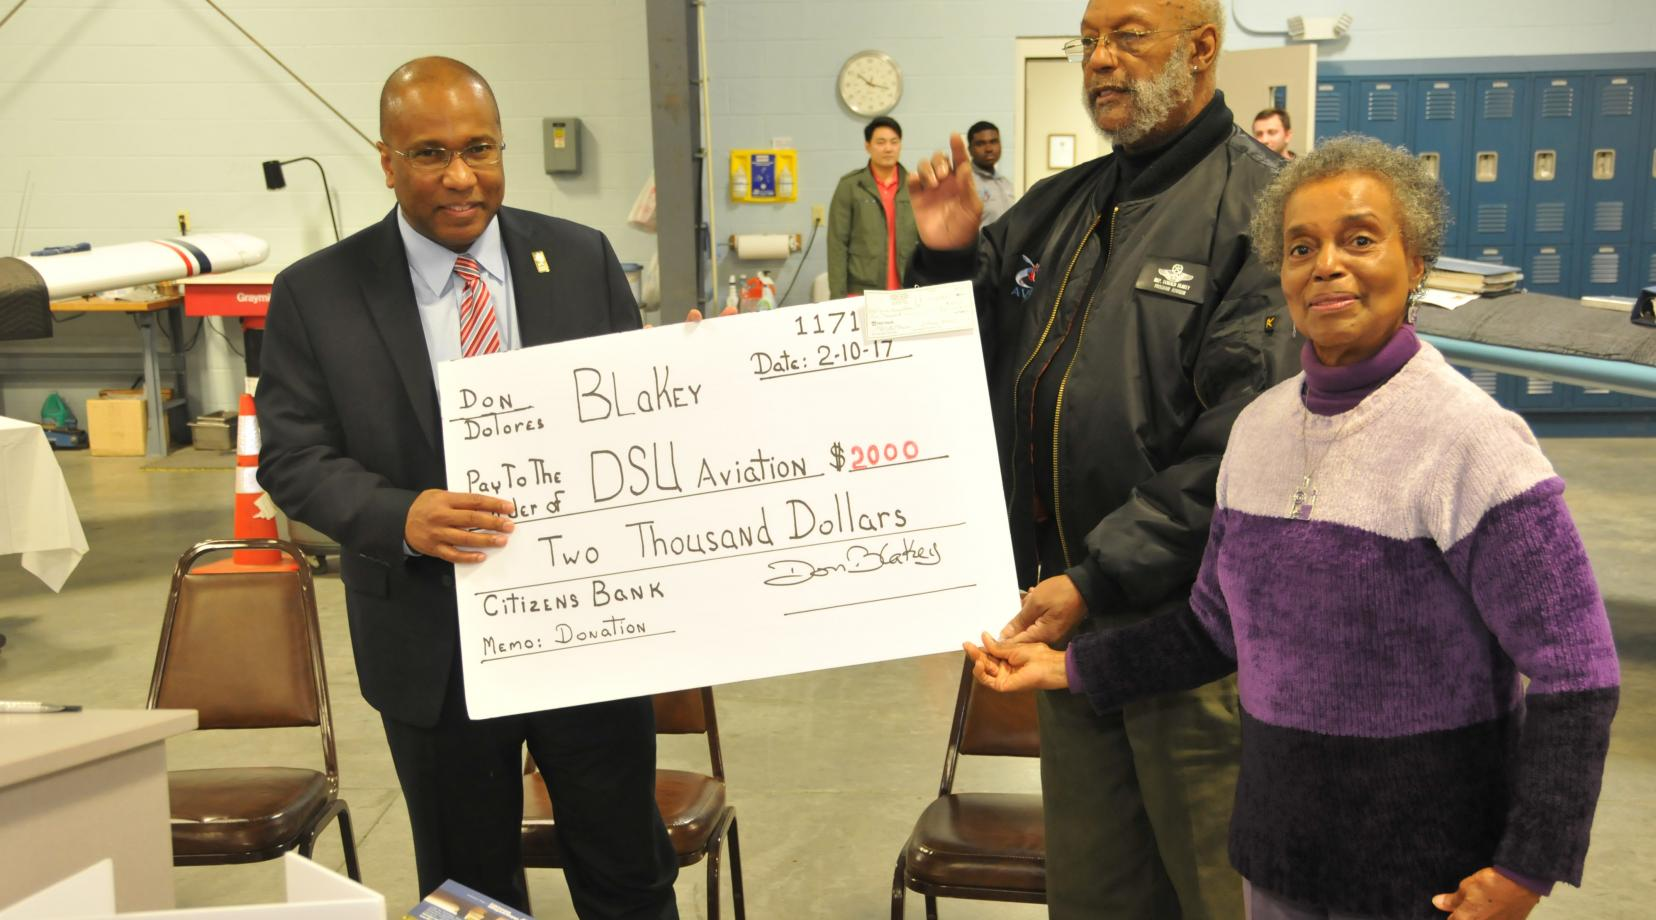 DSU President Harry L. Williams accept a check from Dr. Donald Blakey and his wife Dolores as a kick-off contribution for the newly launched Friends of the DSU Aviation Program fundraising campaign.